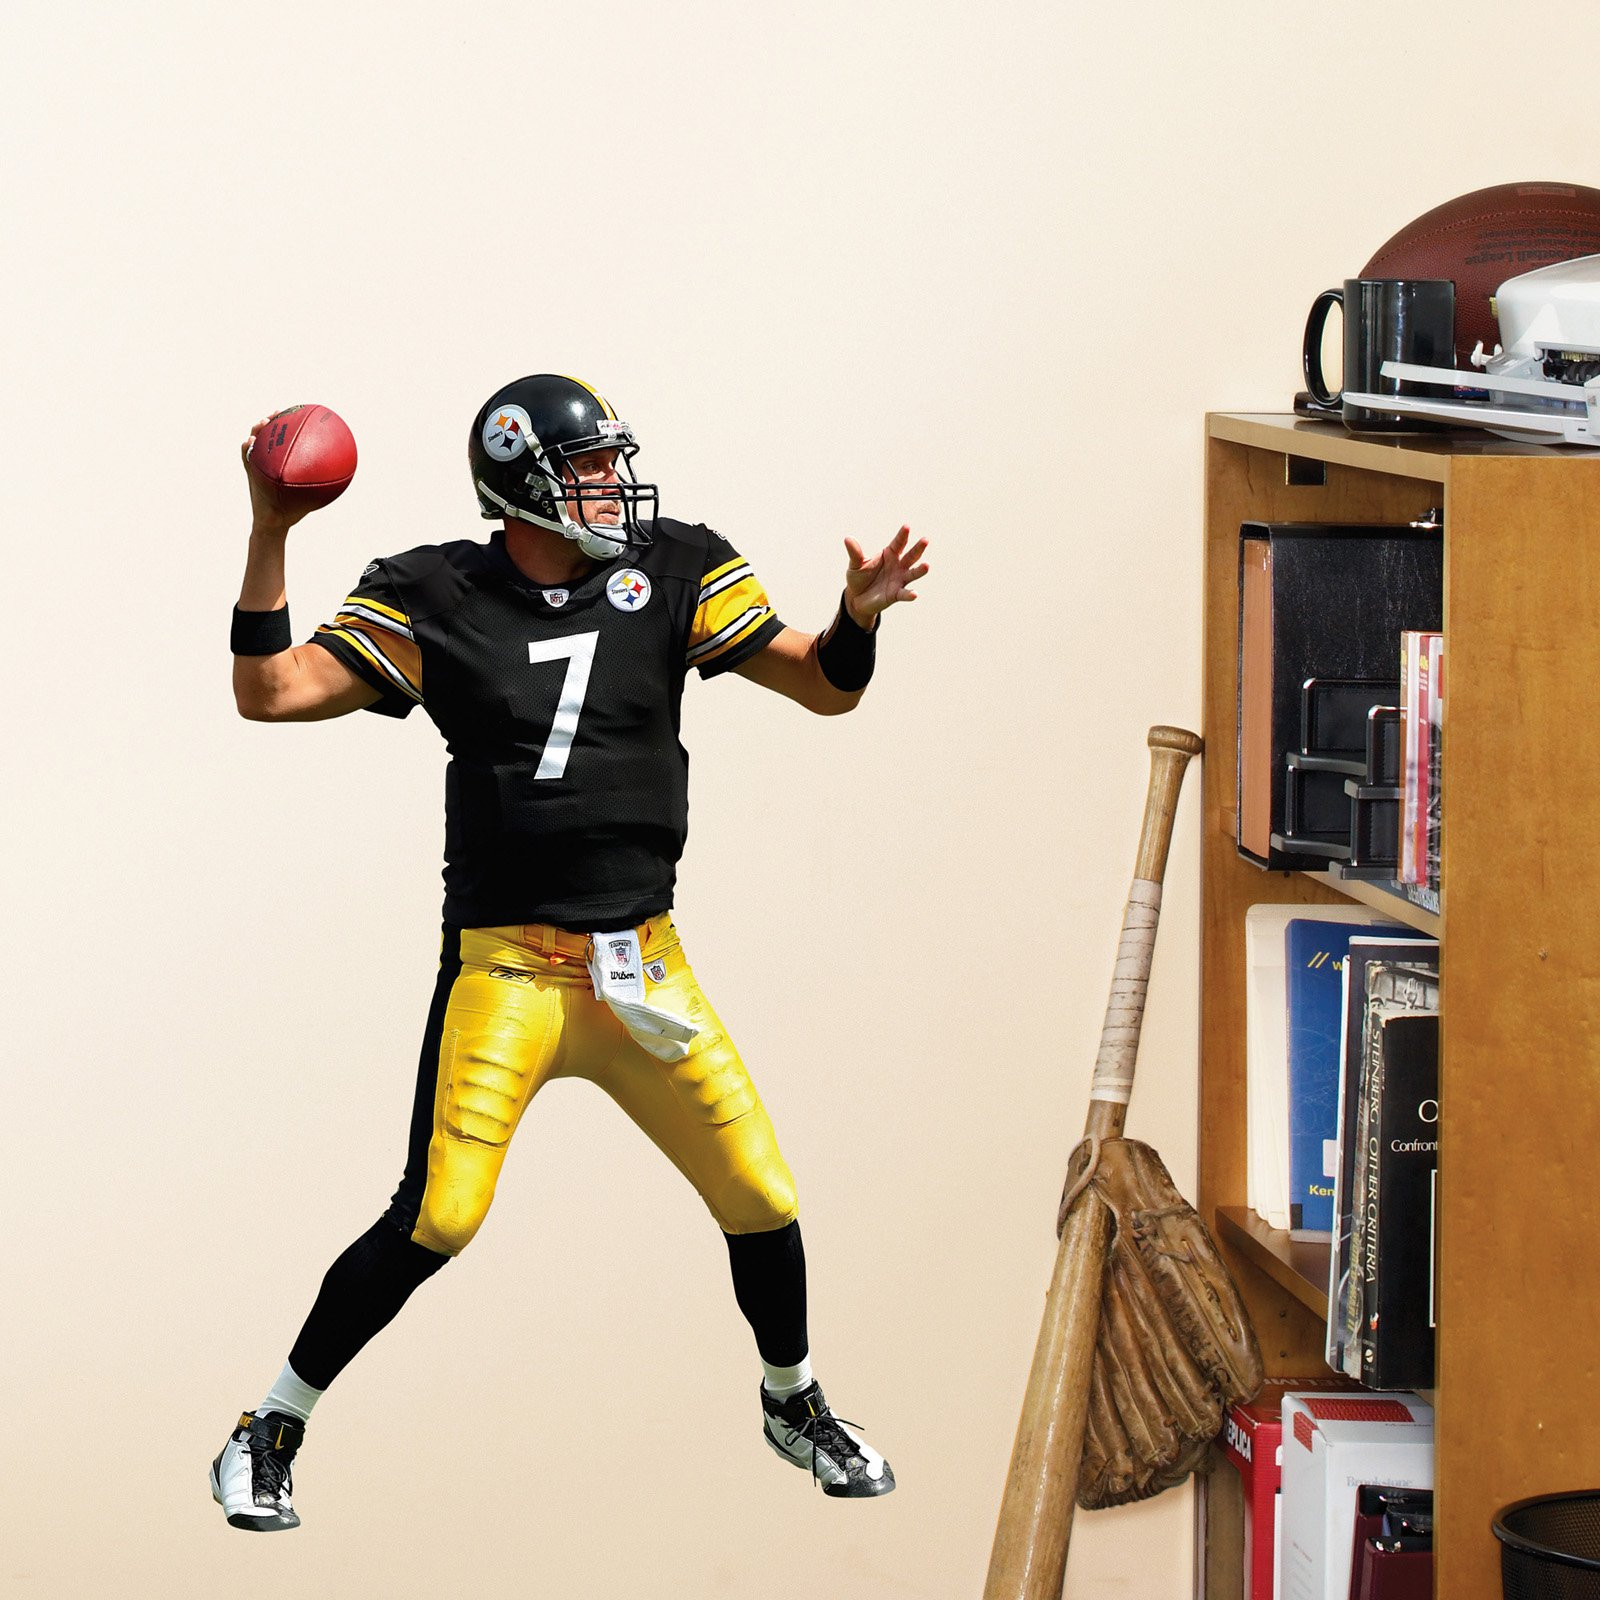 Fathead Jr. NFL Player Wall Decal